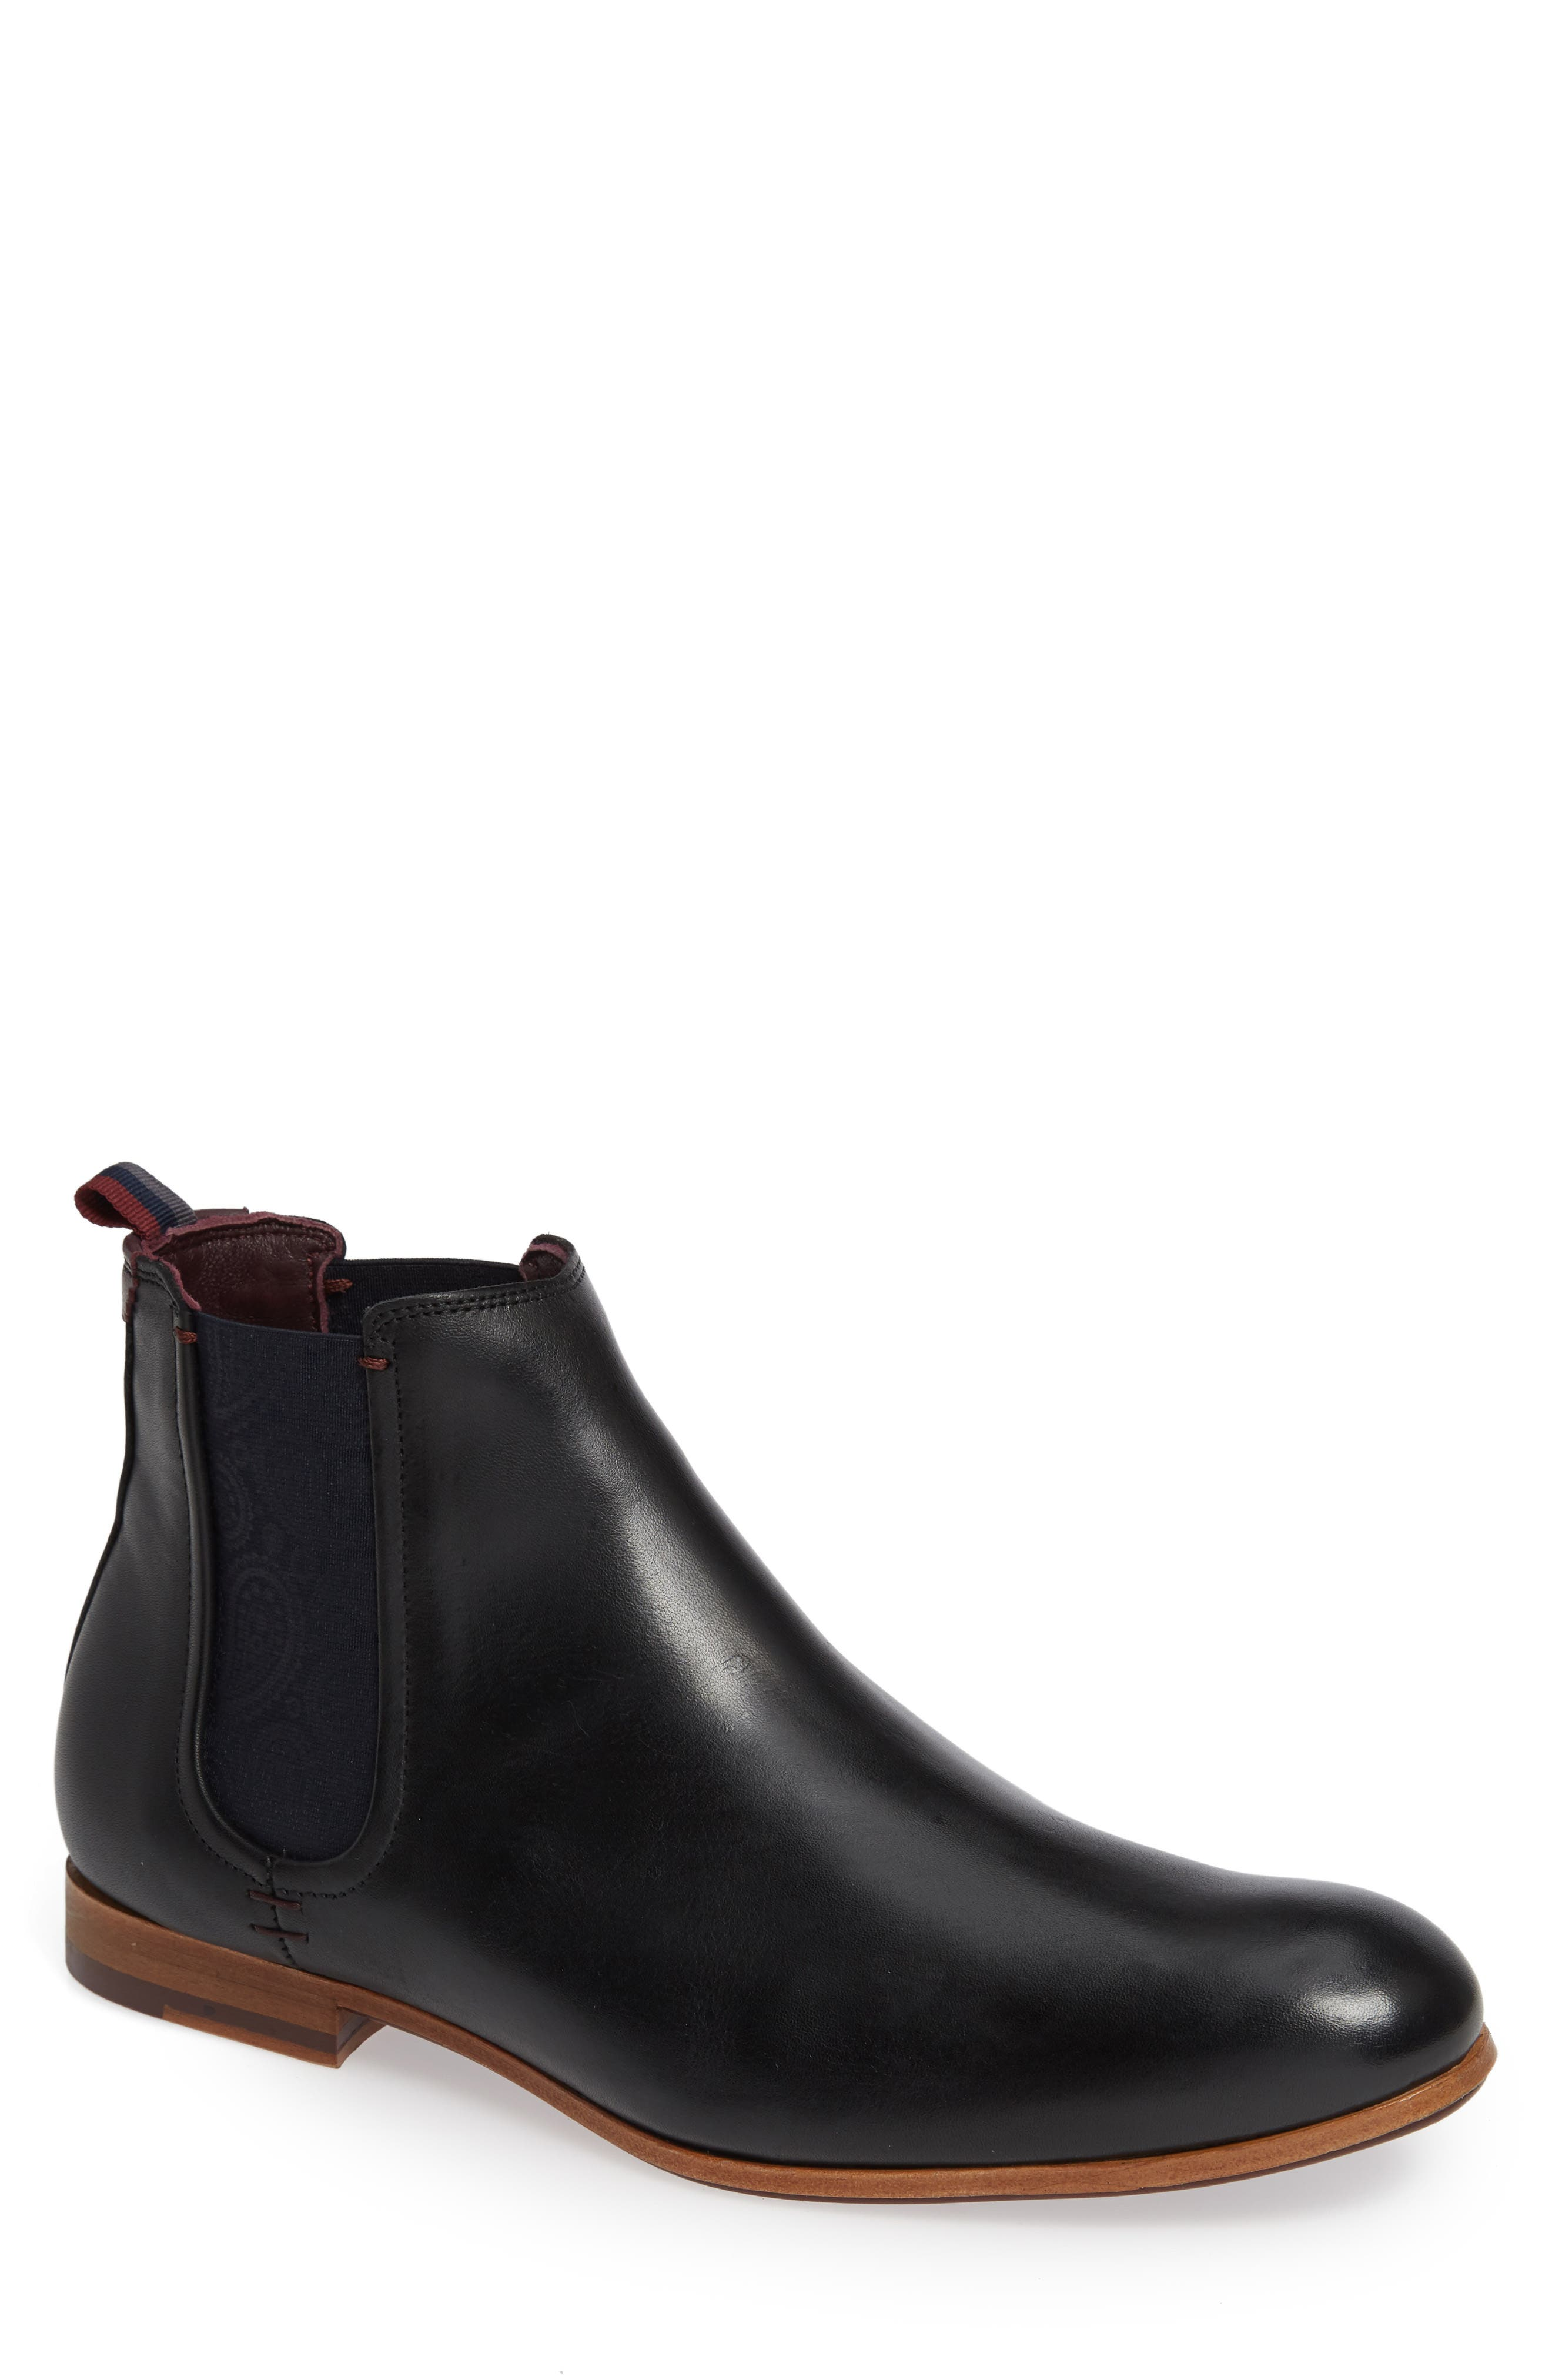 Whron Chelsea Boot,                             Main thumbnail 1, color,                             BLACK